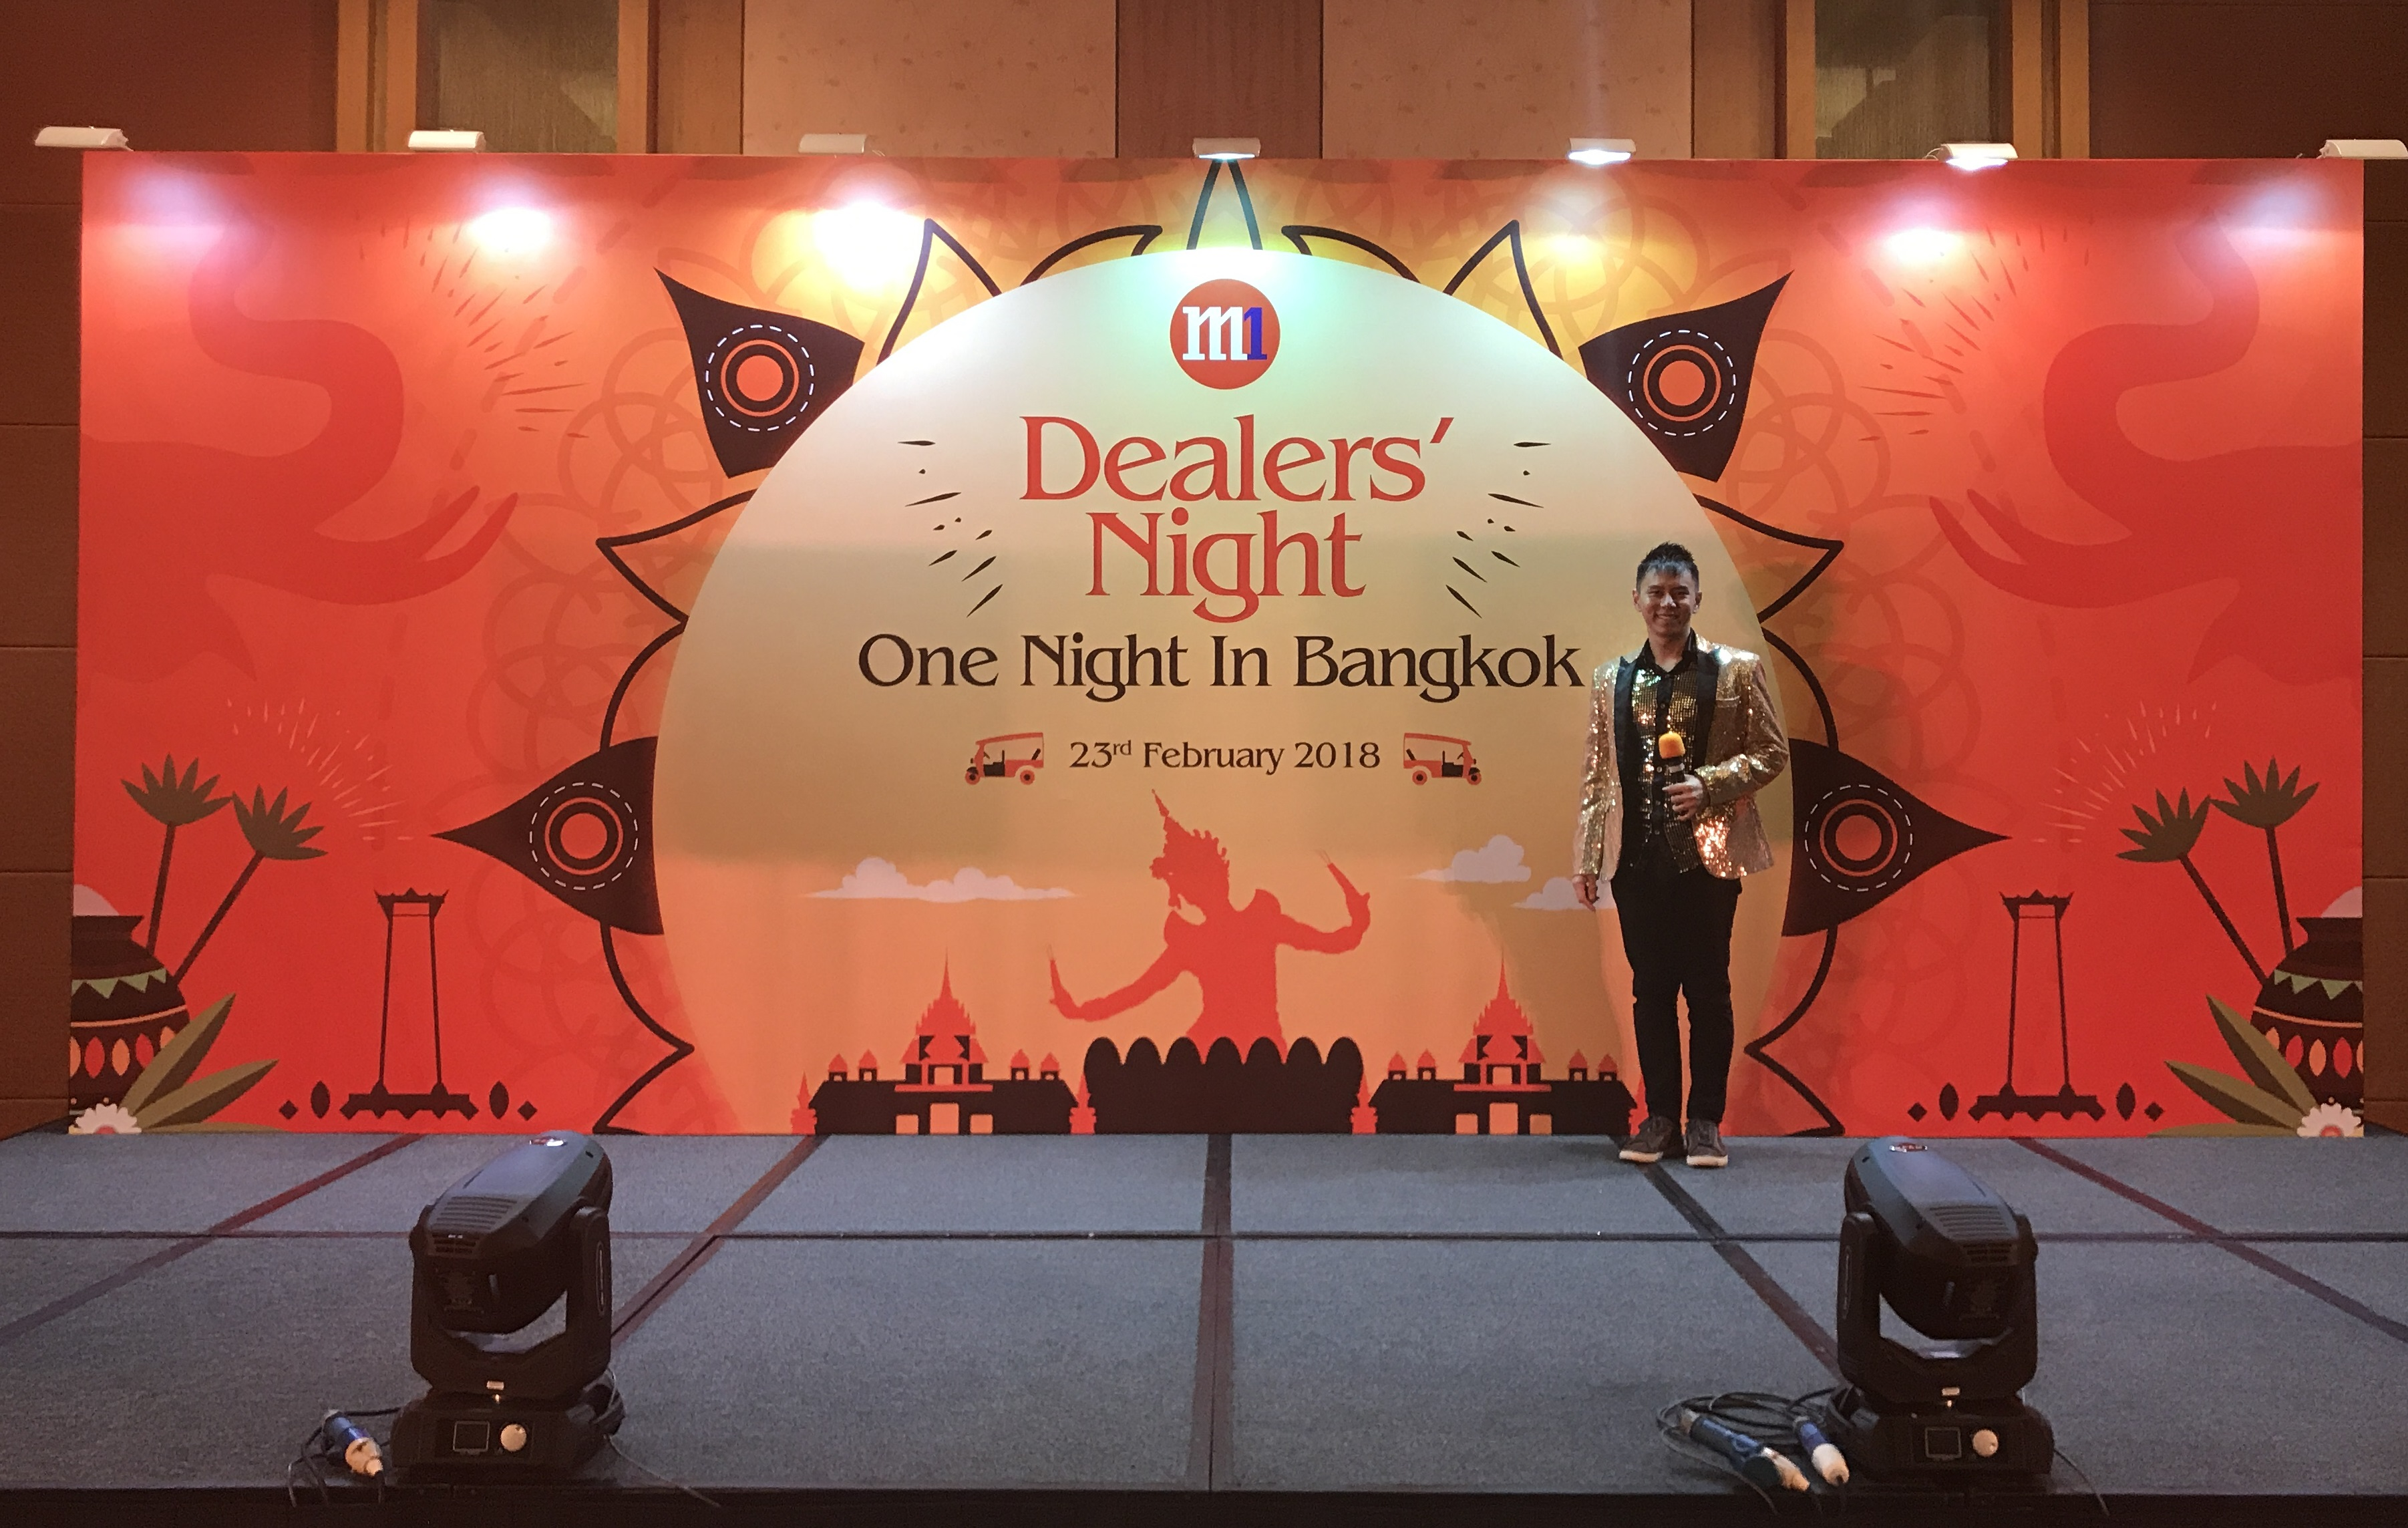 M1 Dealers Night 2018 hosted by emcee lester